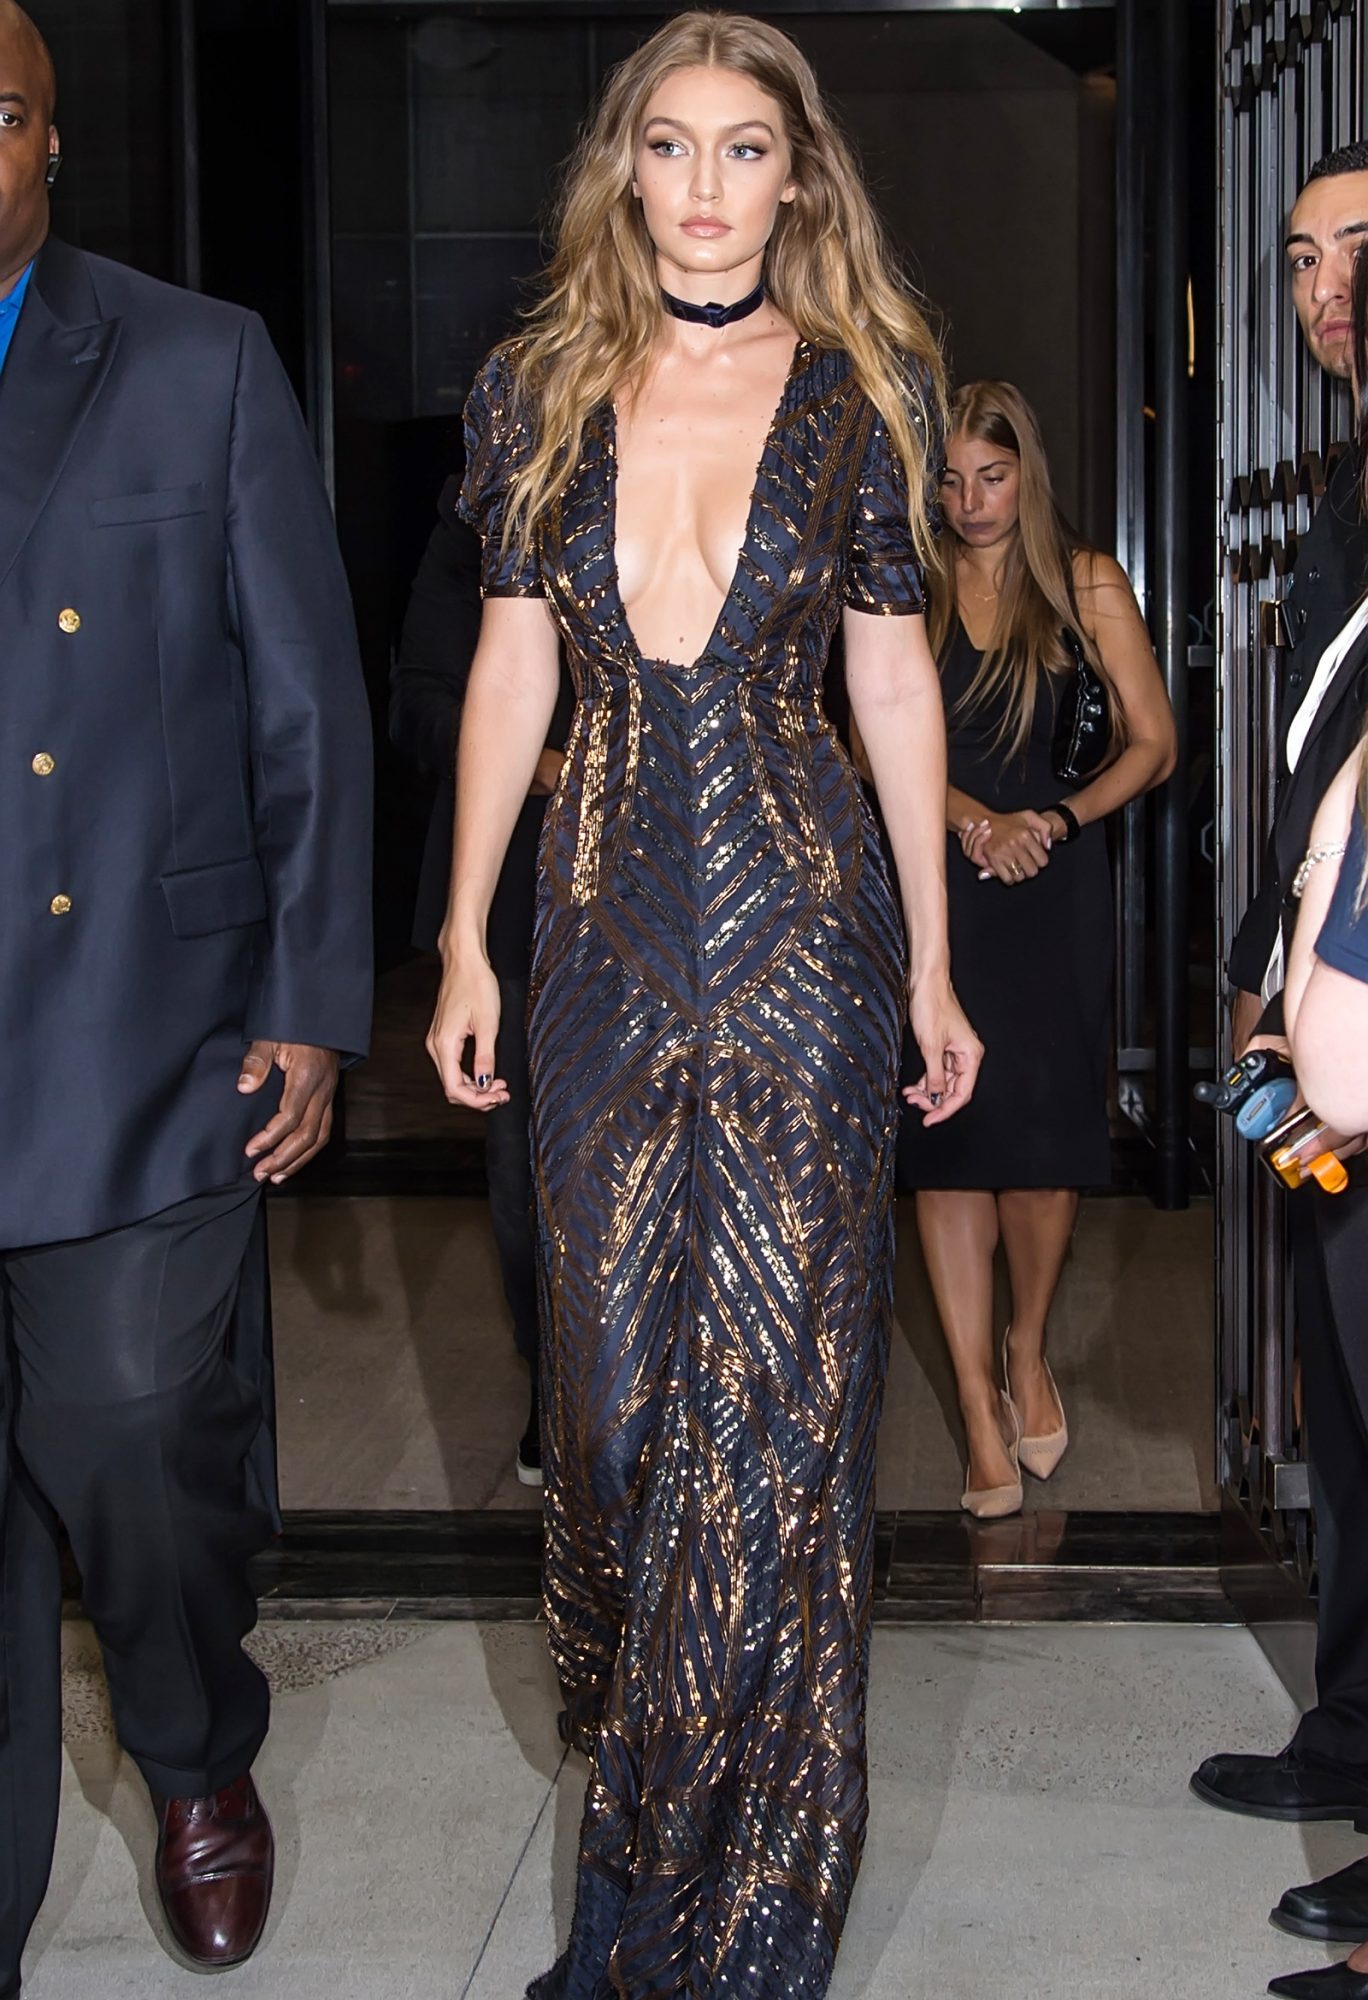 Gigi Hadid is seen leaving The Daily Front Row's 4th Annual Fashion Media Awards at Park Hyatt New York